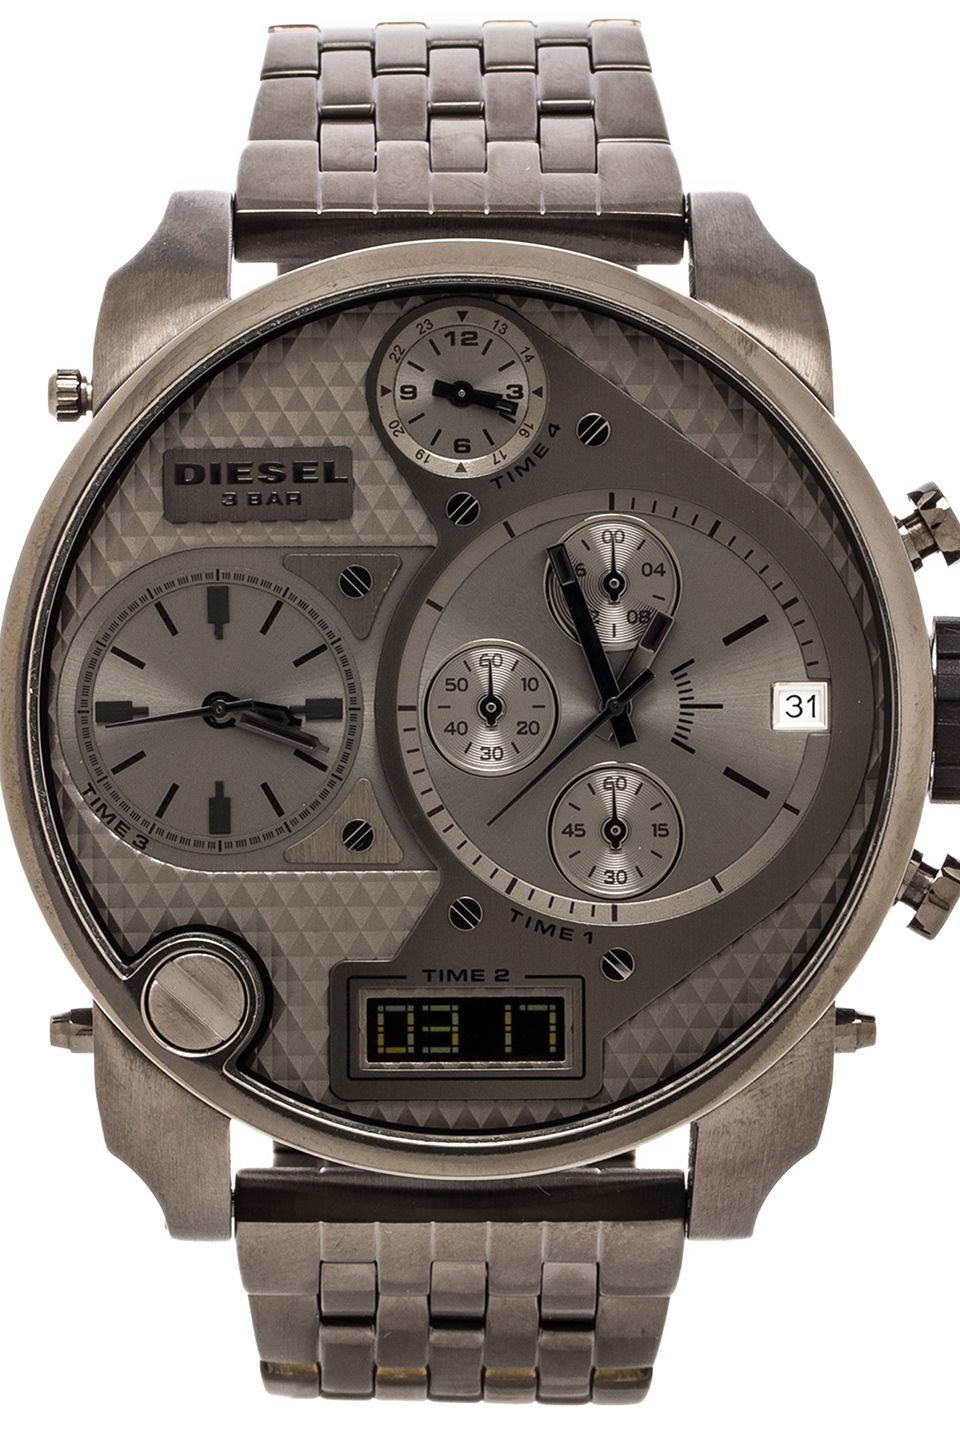 Mens watch Diesel - a stylish and fashion accessory